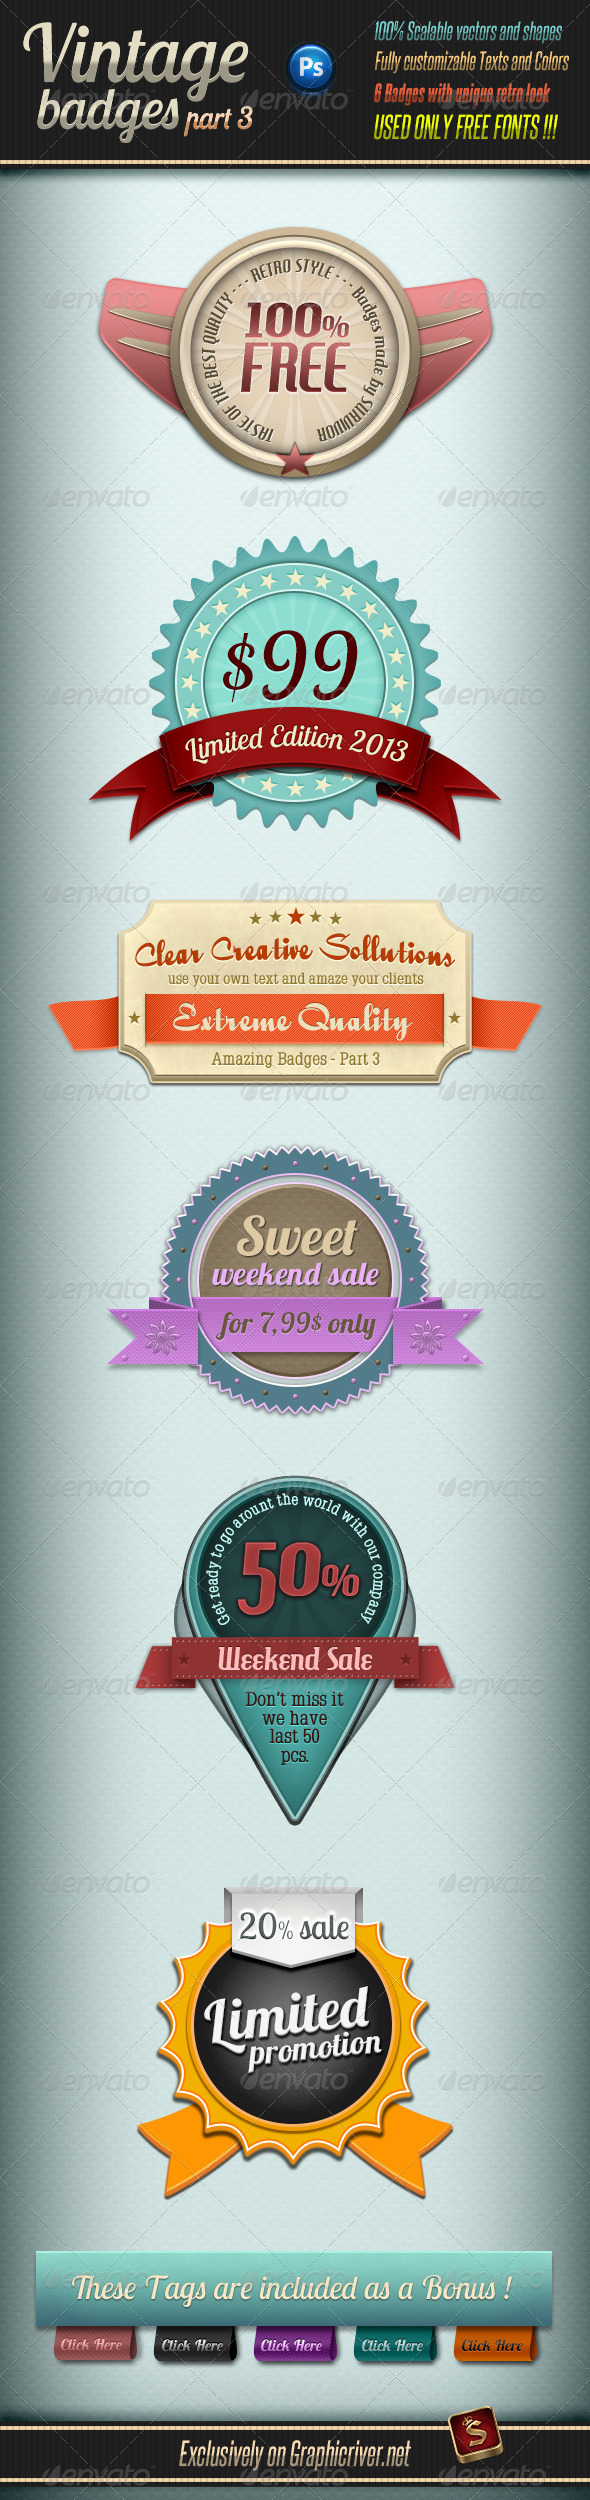 GraphicRiver Retro Vintage Badges Part 3 3774287